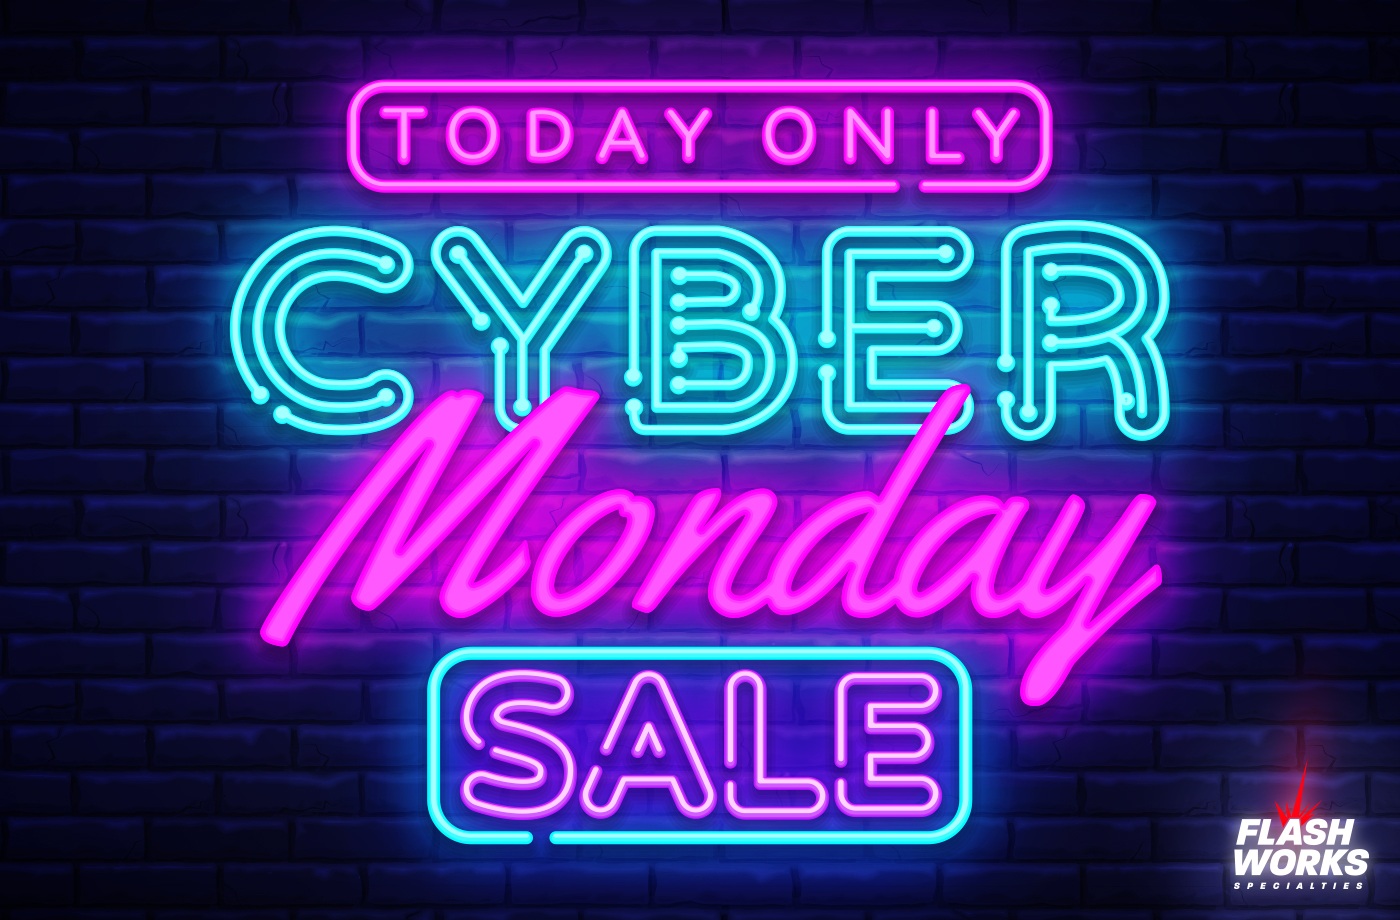 Take 20% off EVERY ITEM in our store during our 2019 Cyber Monday sale!